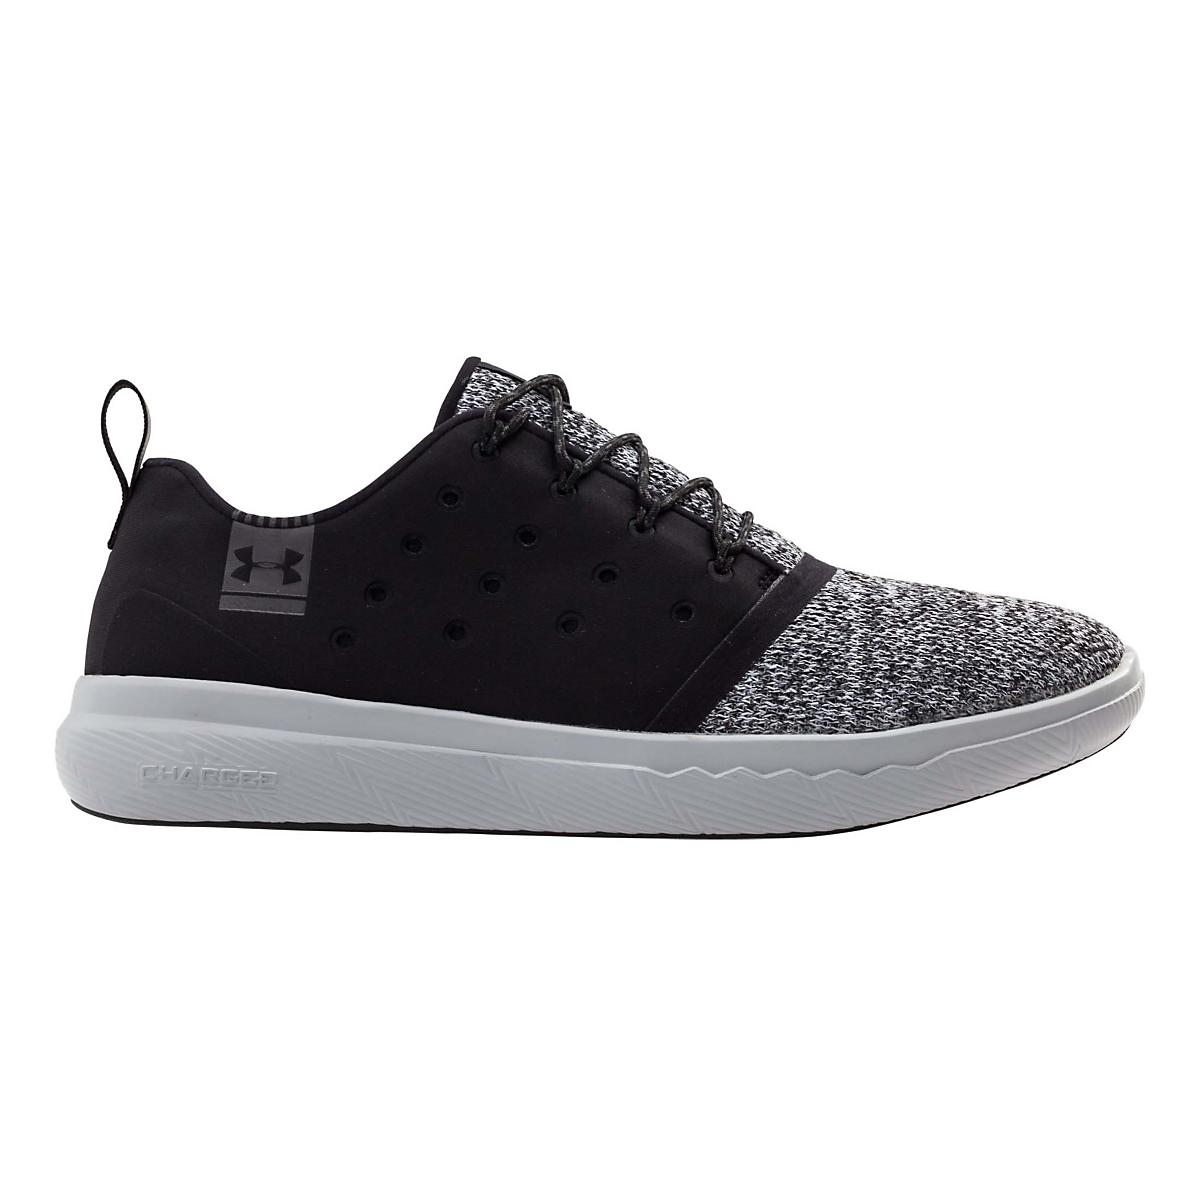 Mens Under Armour Charged 24 7 Low Casual Shoe at Road Runner Sports f38ccf087